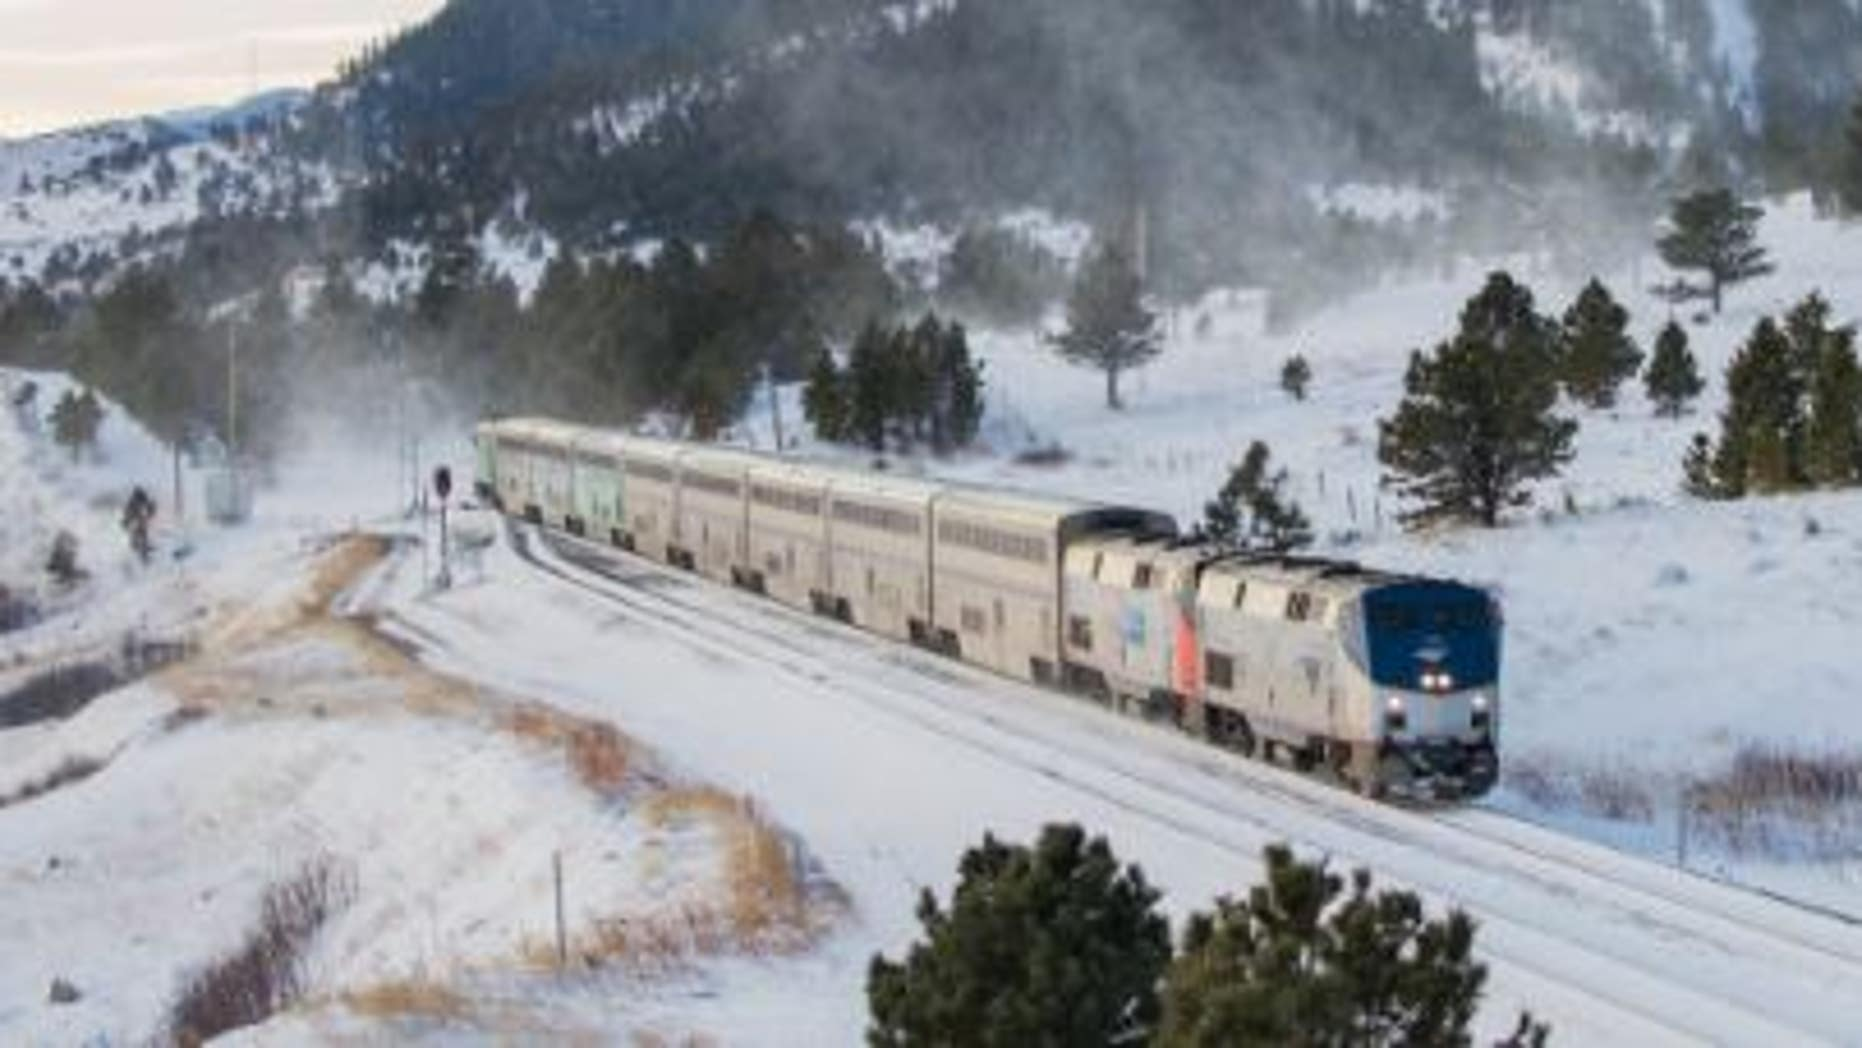 Amtrak train stranded since Sunday with 183 aboard